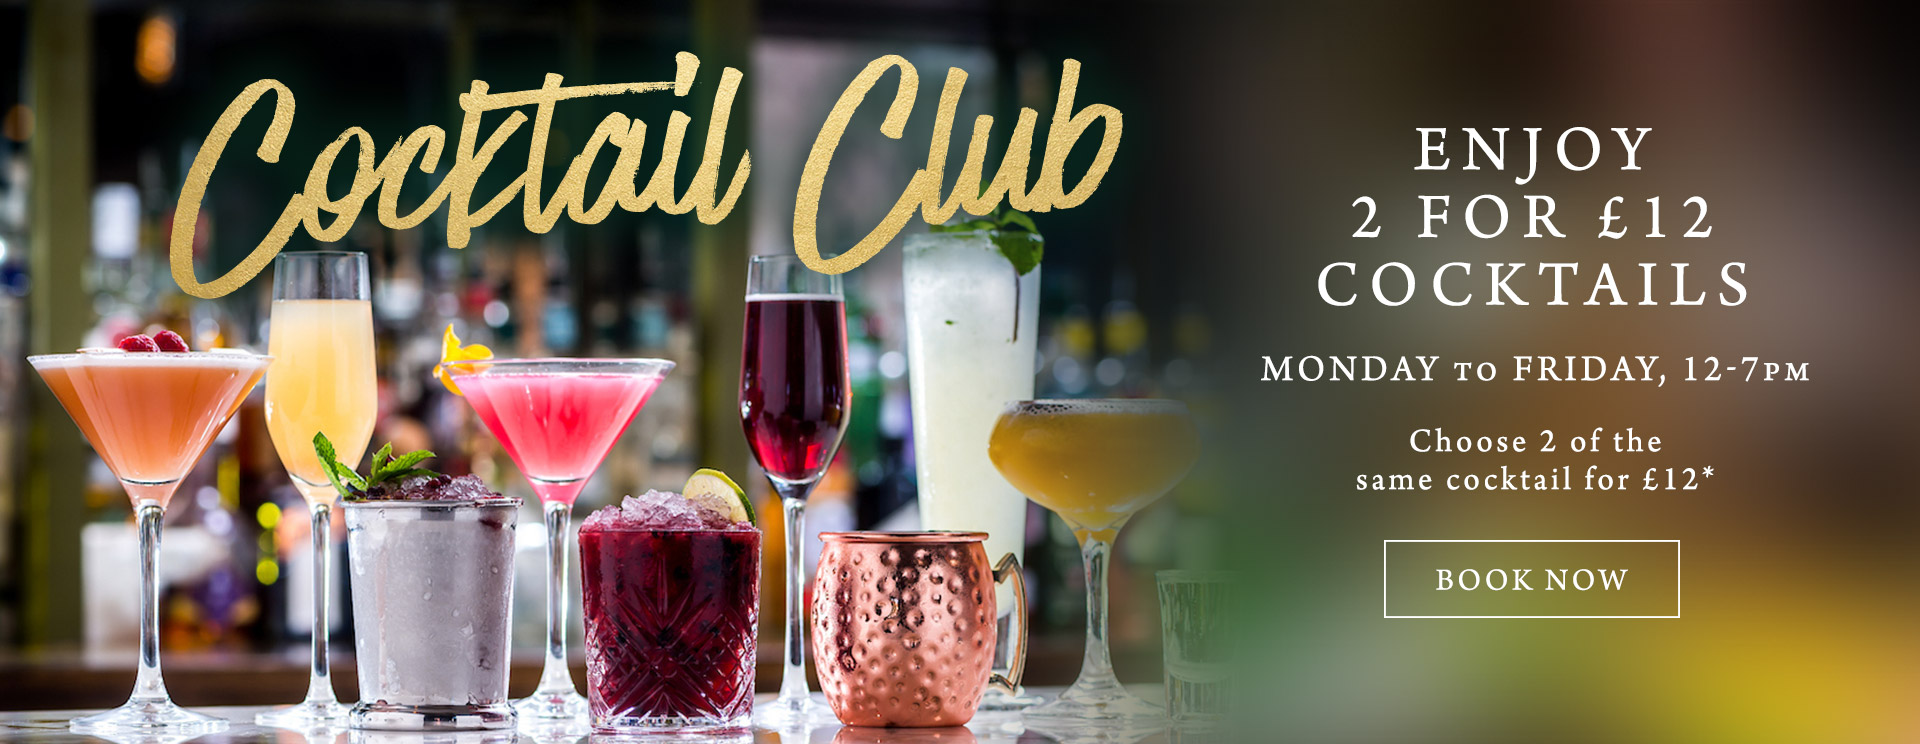 2 for £12 cocktails at The Fox & Hounds